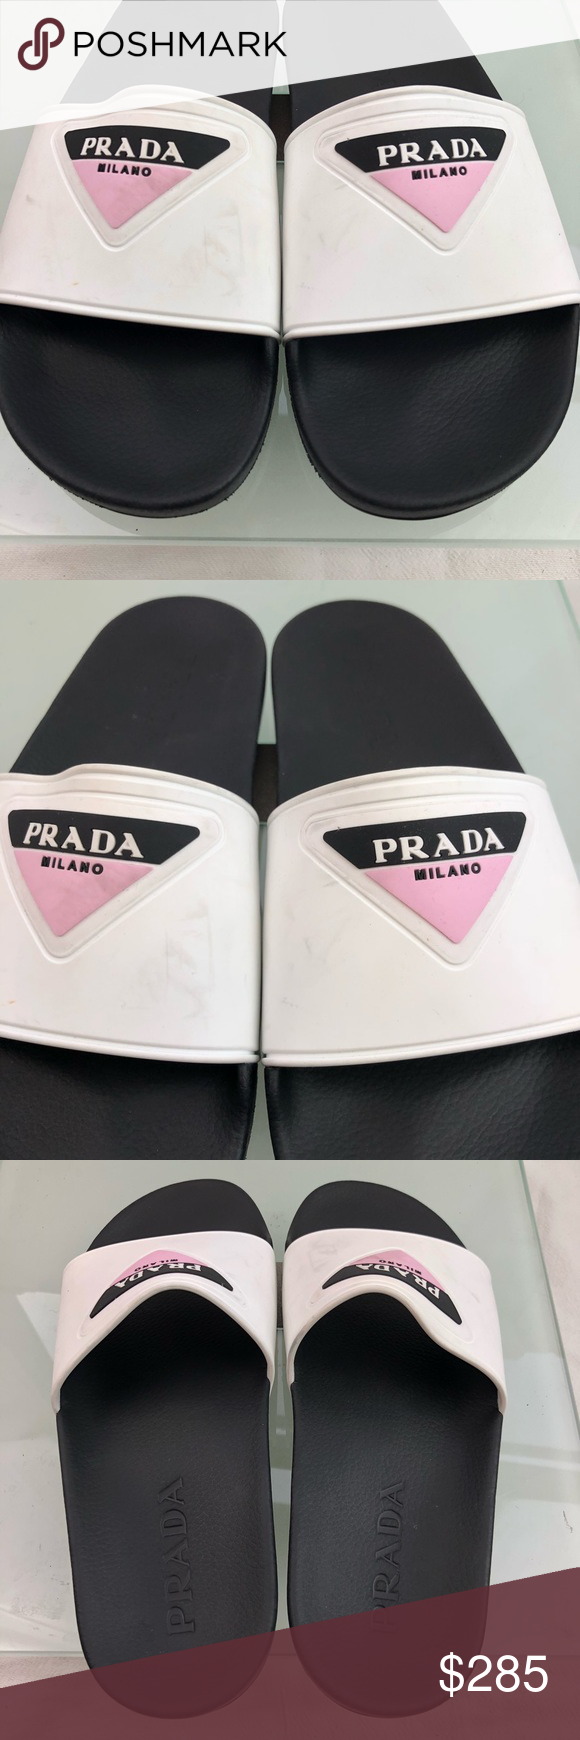 df5f468b658 Prada Logo rubber pool Slides sandals Excellent condition! No box. Retail  price online and at all big department stores for  350 plus tax.